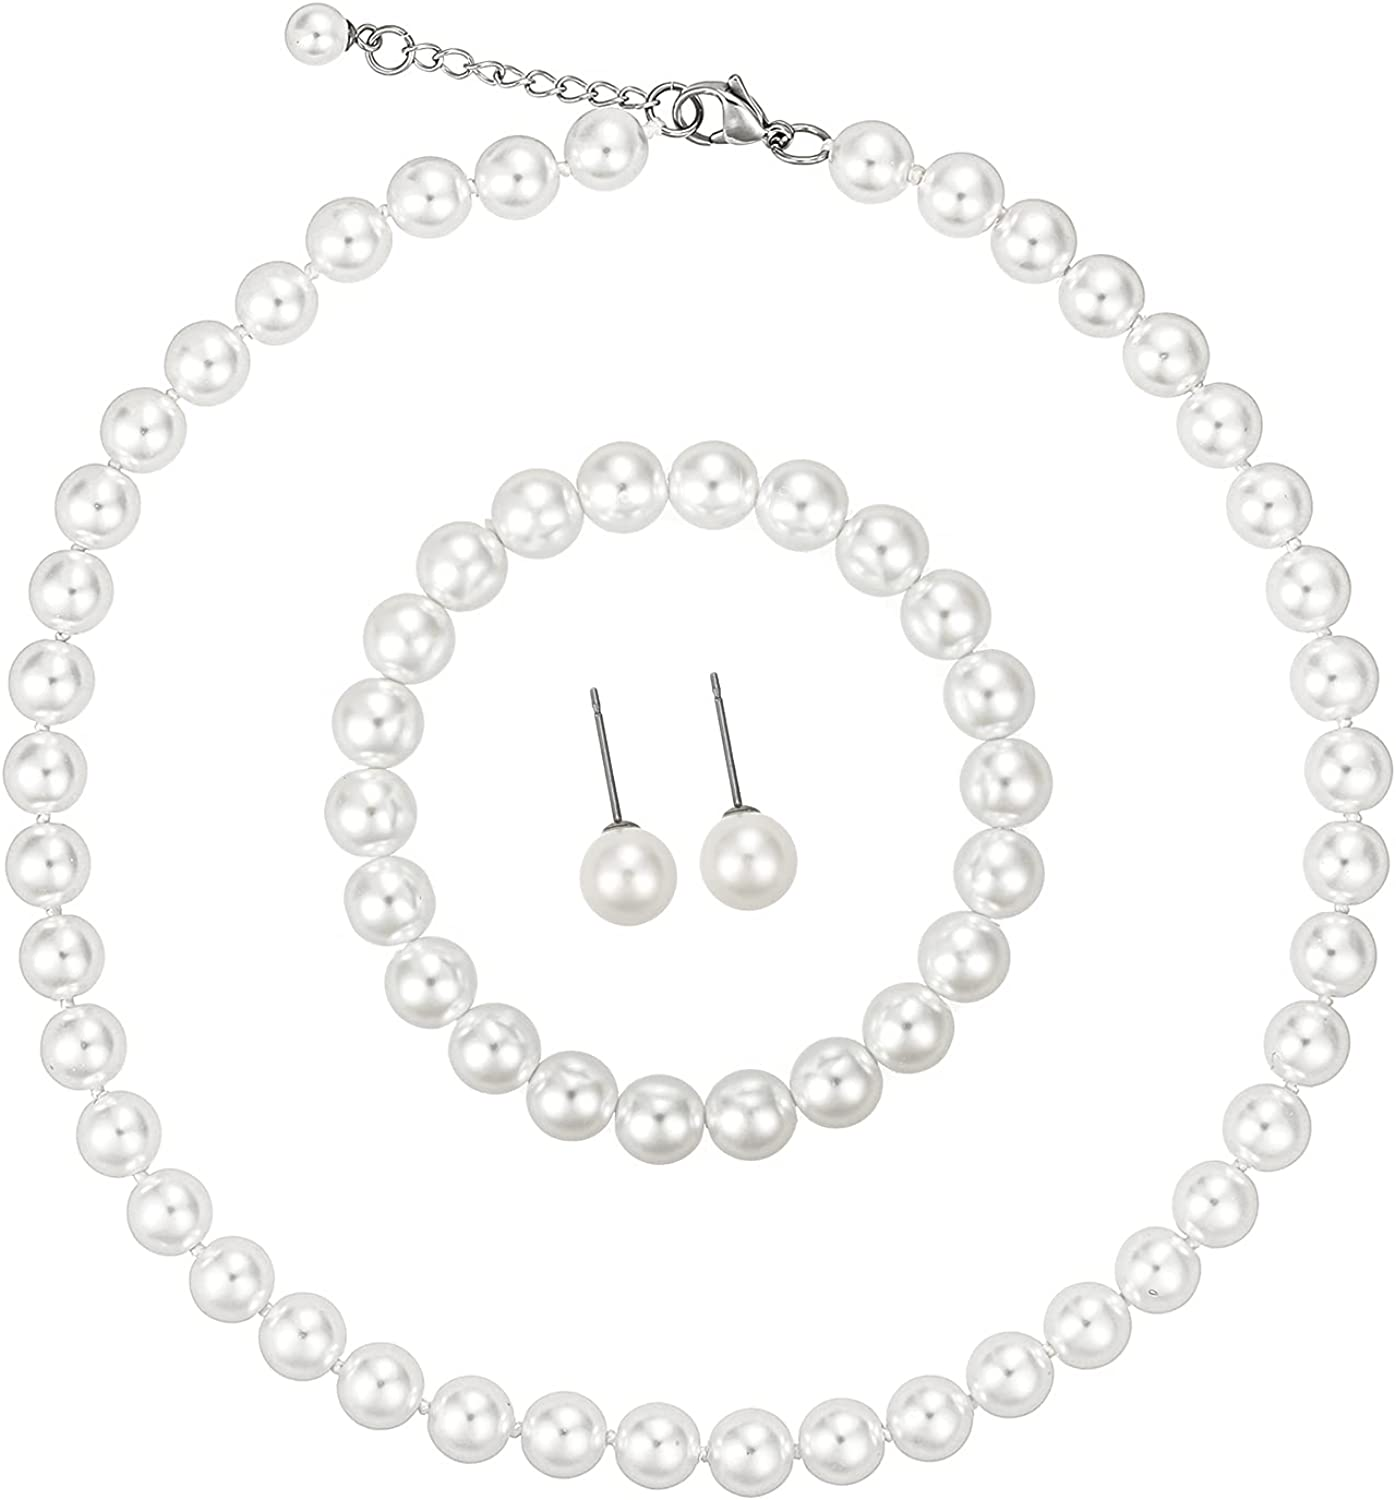 LZMEI White 8mm Faux Hand Knotted Glass Imitation Pearls Necklace Earring Jewelry 3 Set for Women and Girls